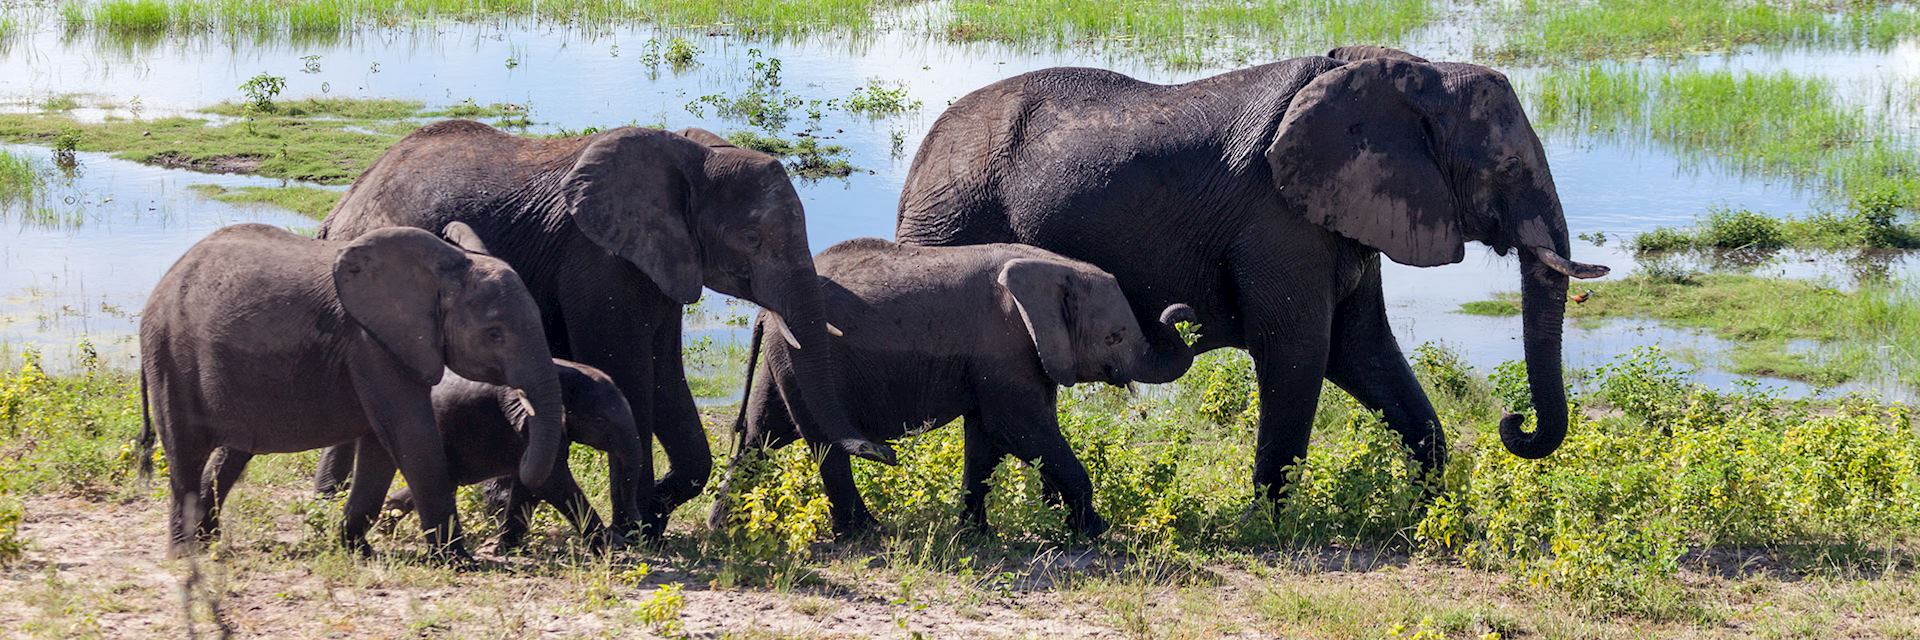 Elephant herd in Chobe National Park, Botswana